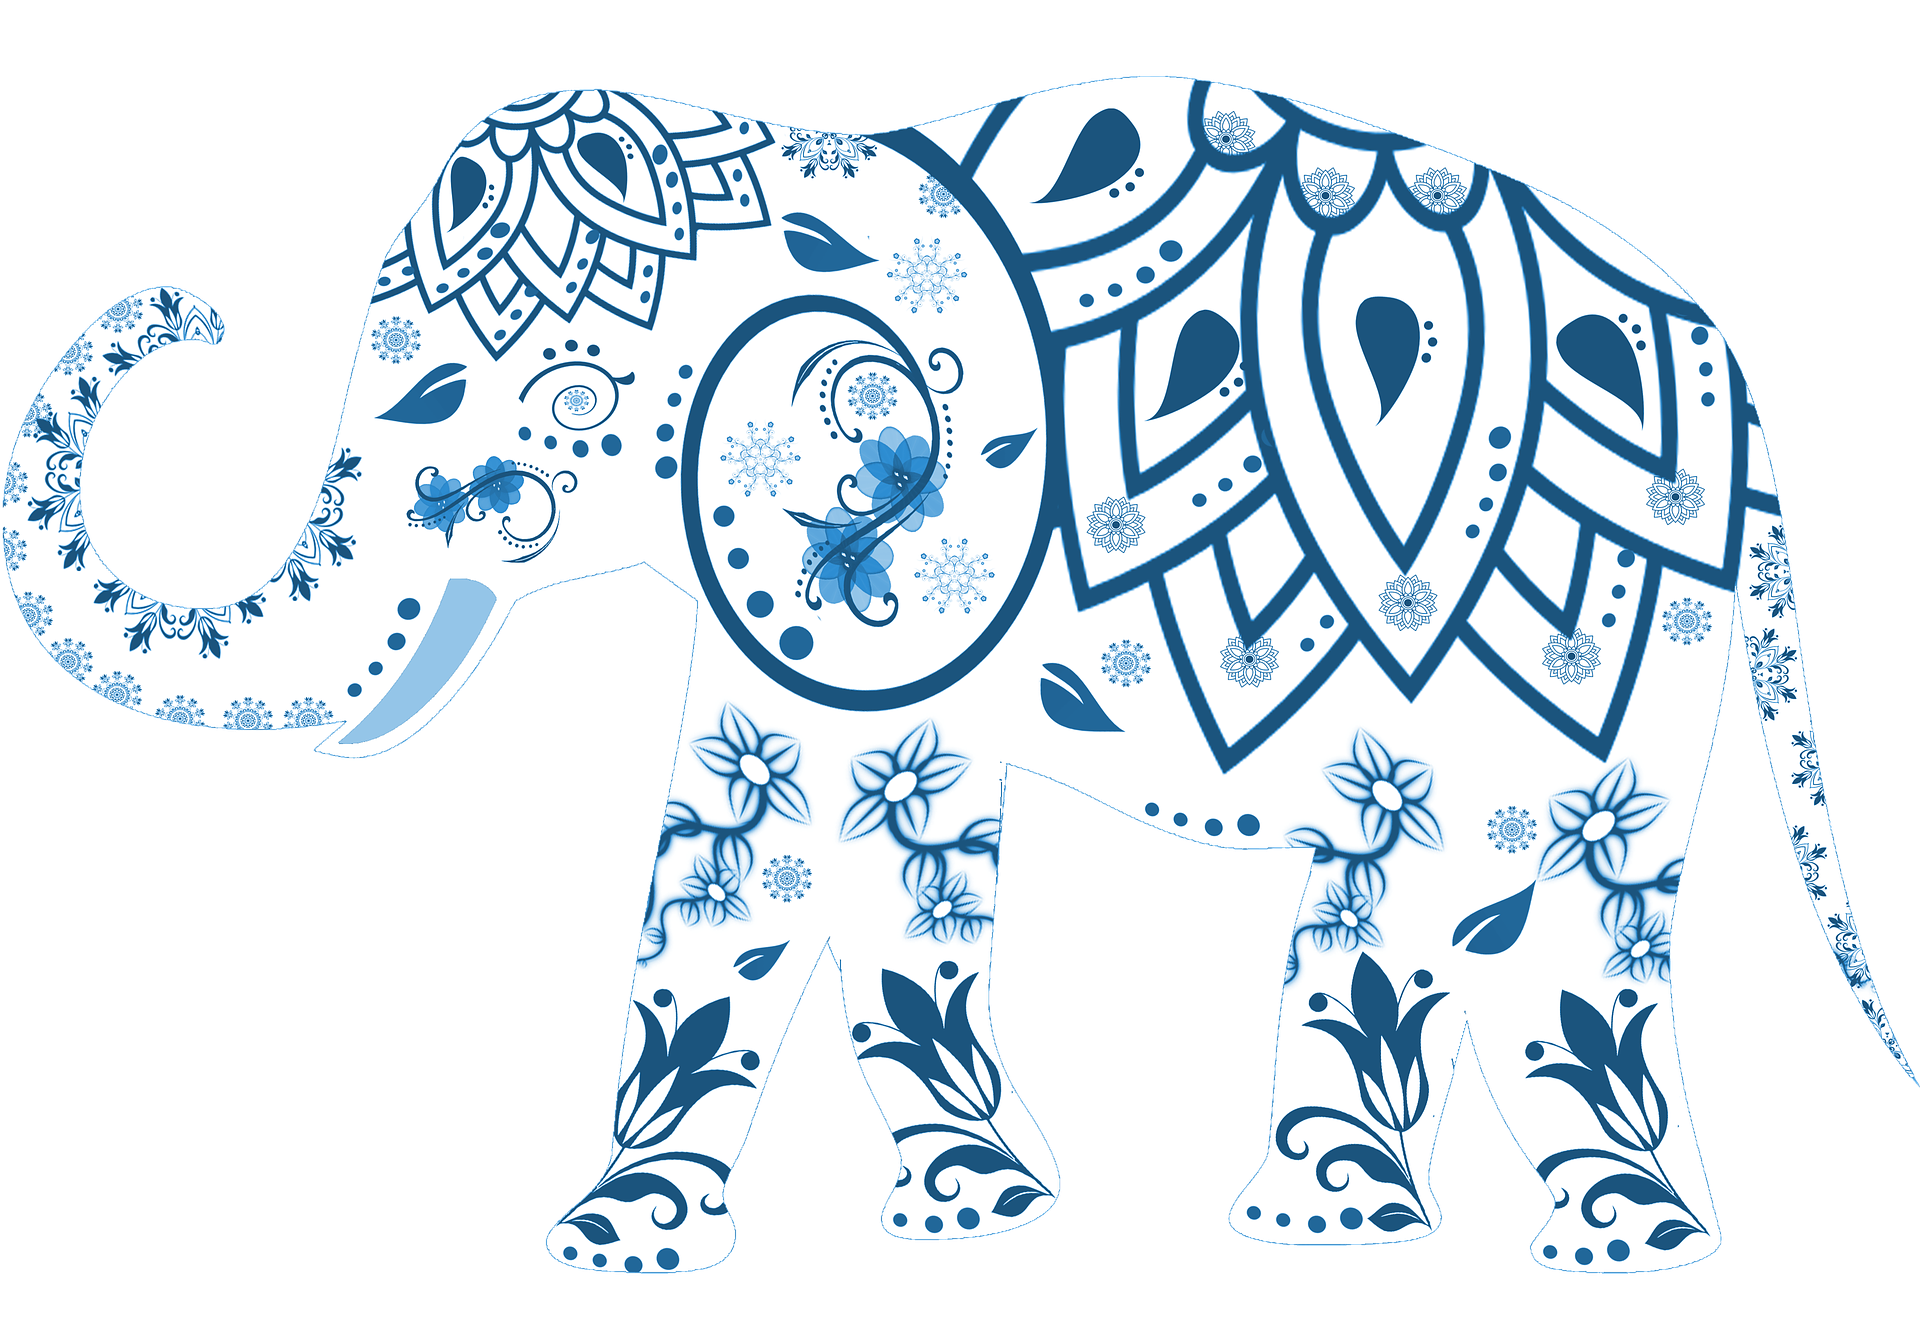 Graphic of elephant with designs on it: flowers on feet, large petals on back….